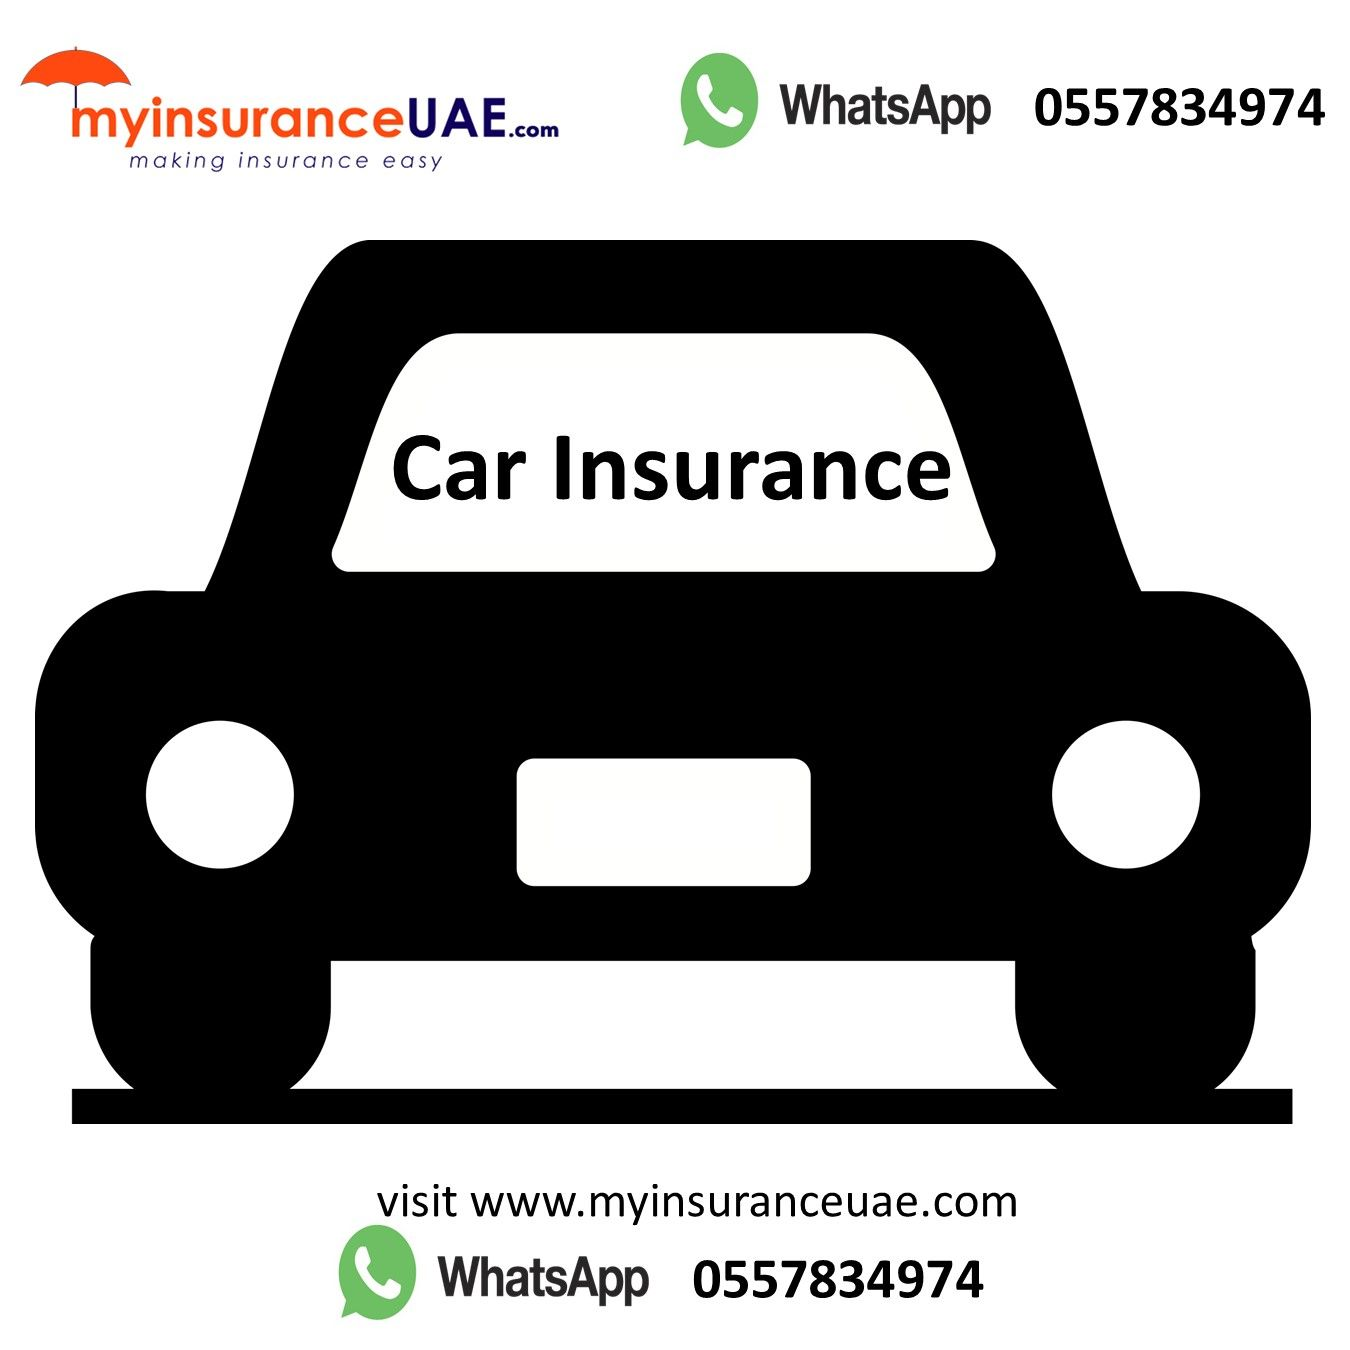 Visit the website www.myinsuranceuae.com or contact in ...